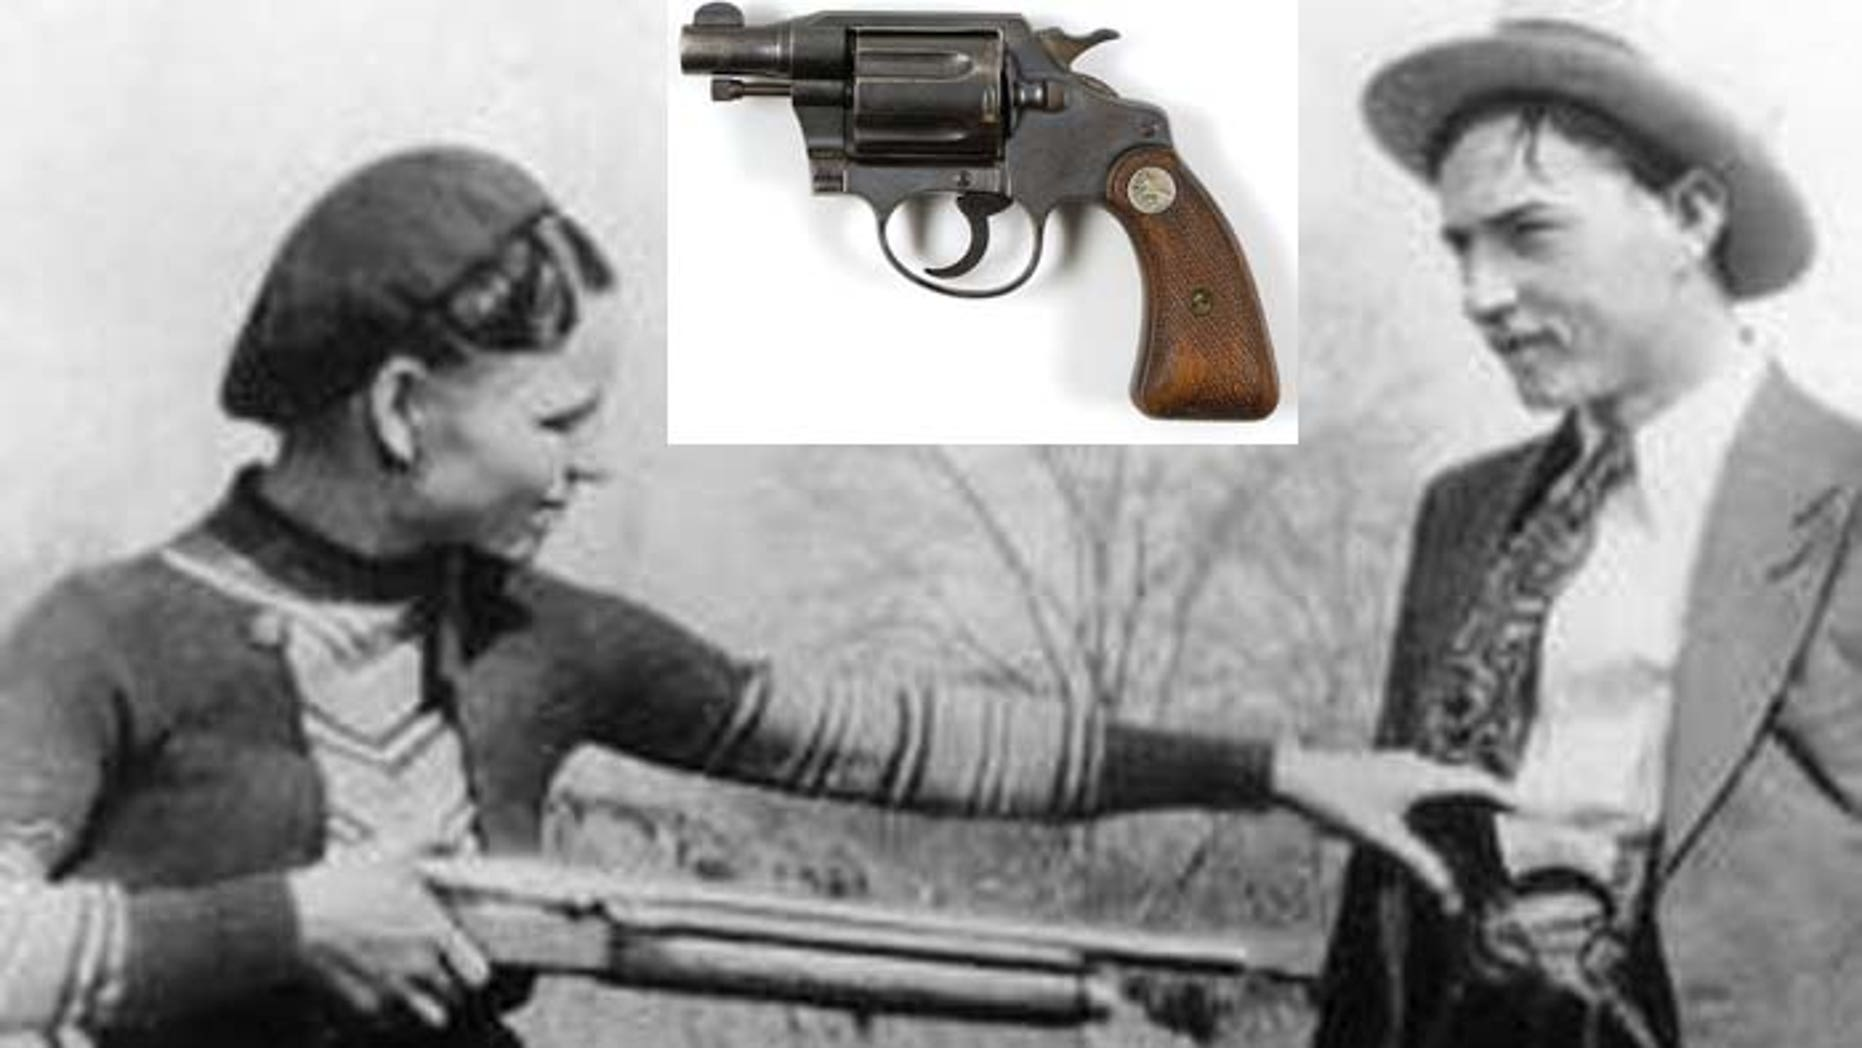 Bonnie Parker was just 24 in 1934 when she and Clyde Barrow died in a hail of gunfire after being ambushed by authorities in Louisiana. Their deaths ended a legendary Depression-era crime spree that spanned the central U.S. and included holdups of more than a dozen banks and scores of small shops and gas stations. (AP file)